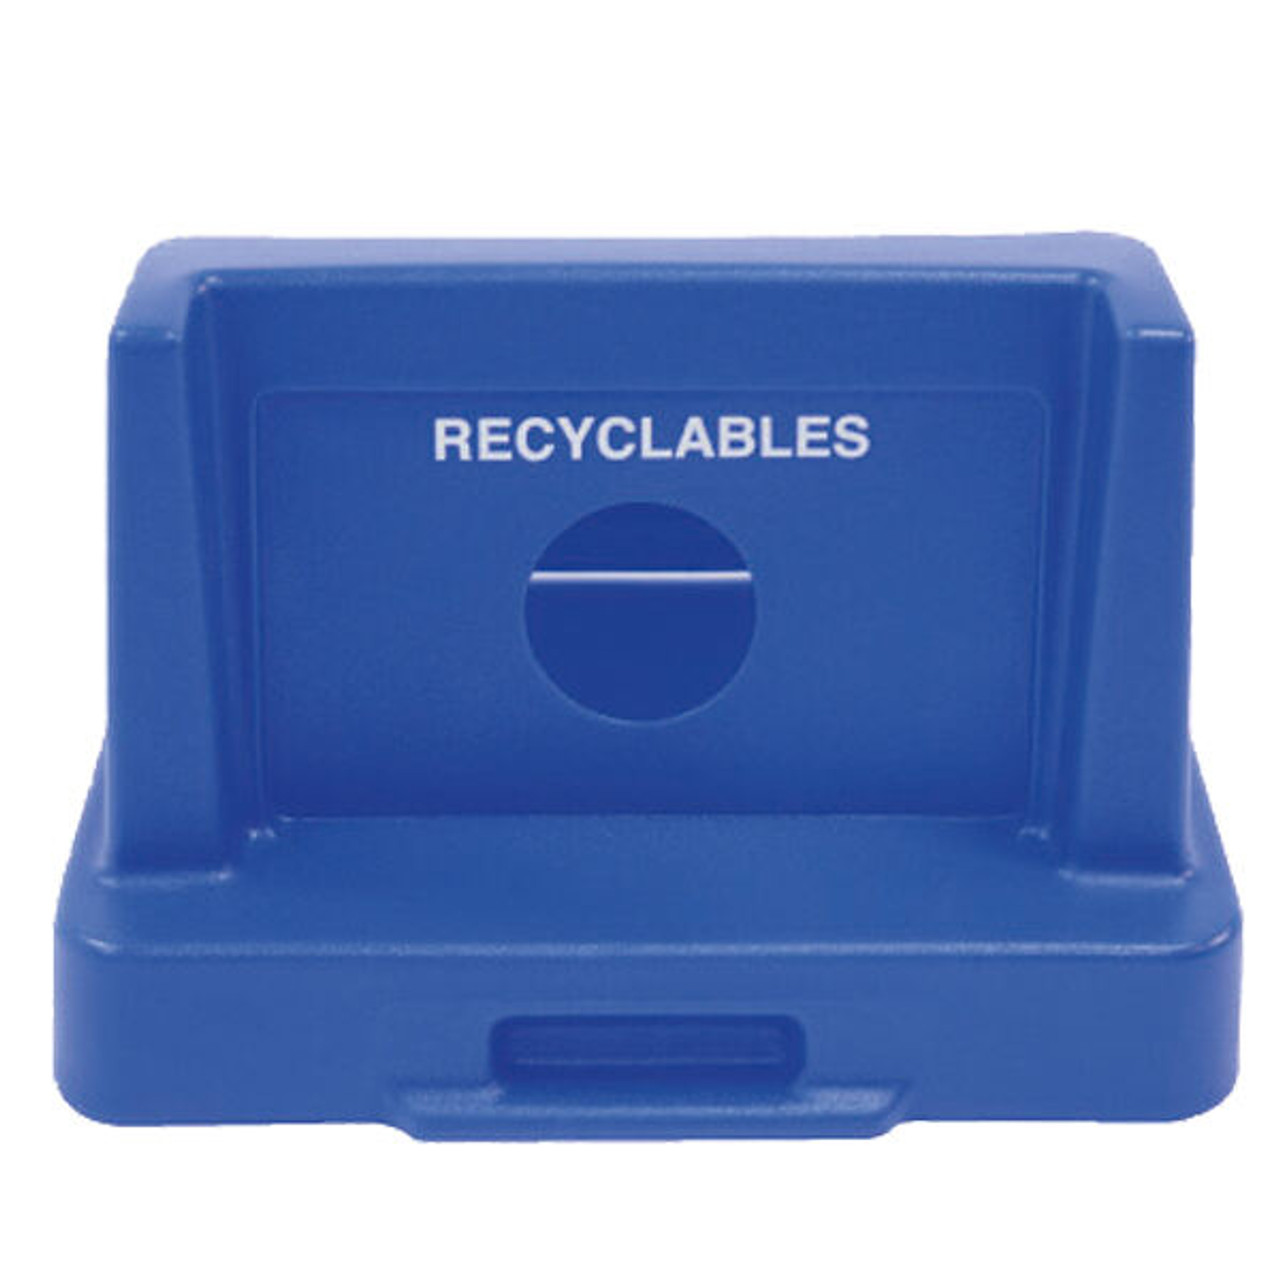 25 x 25 Domed Plastic Recycle Lids TF1424 for Square Trash Cans (Many Colors)